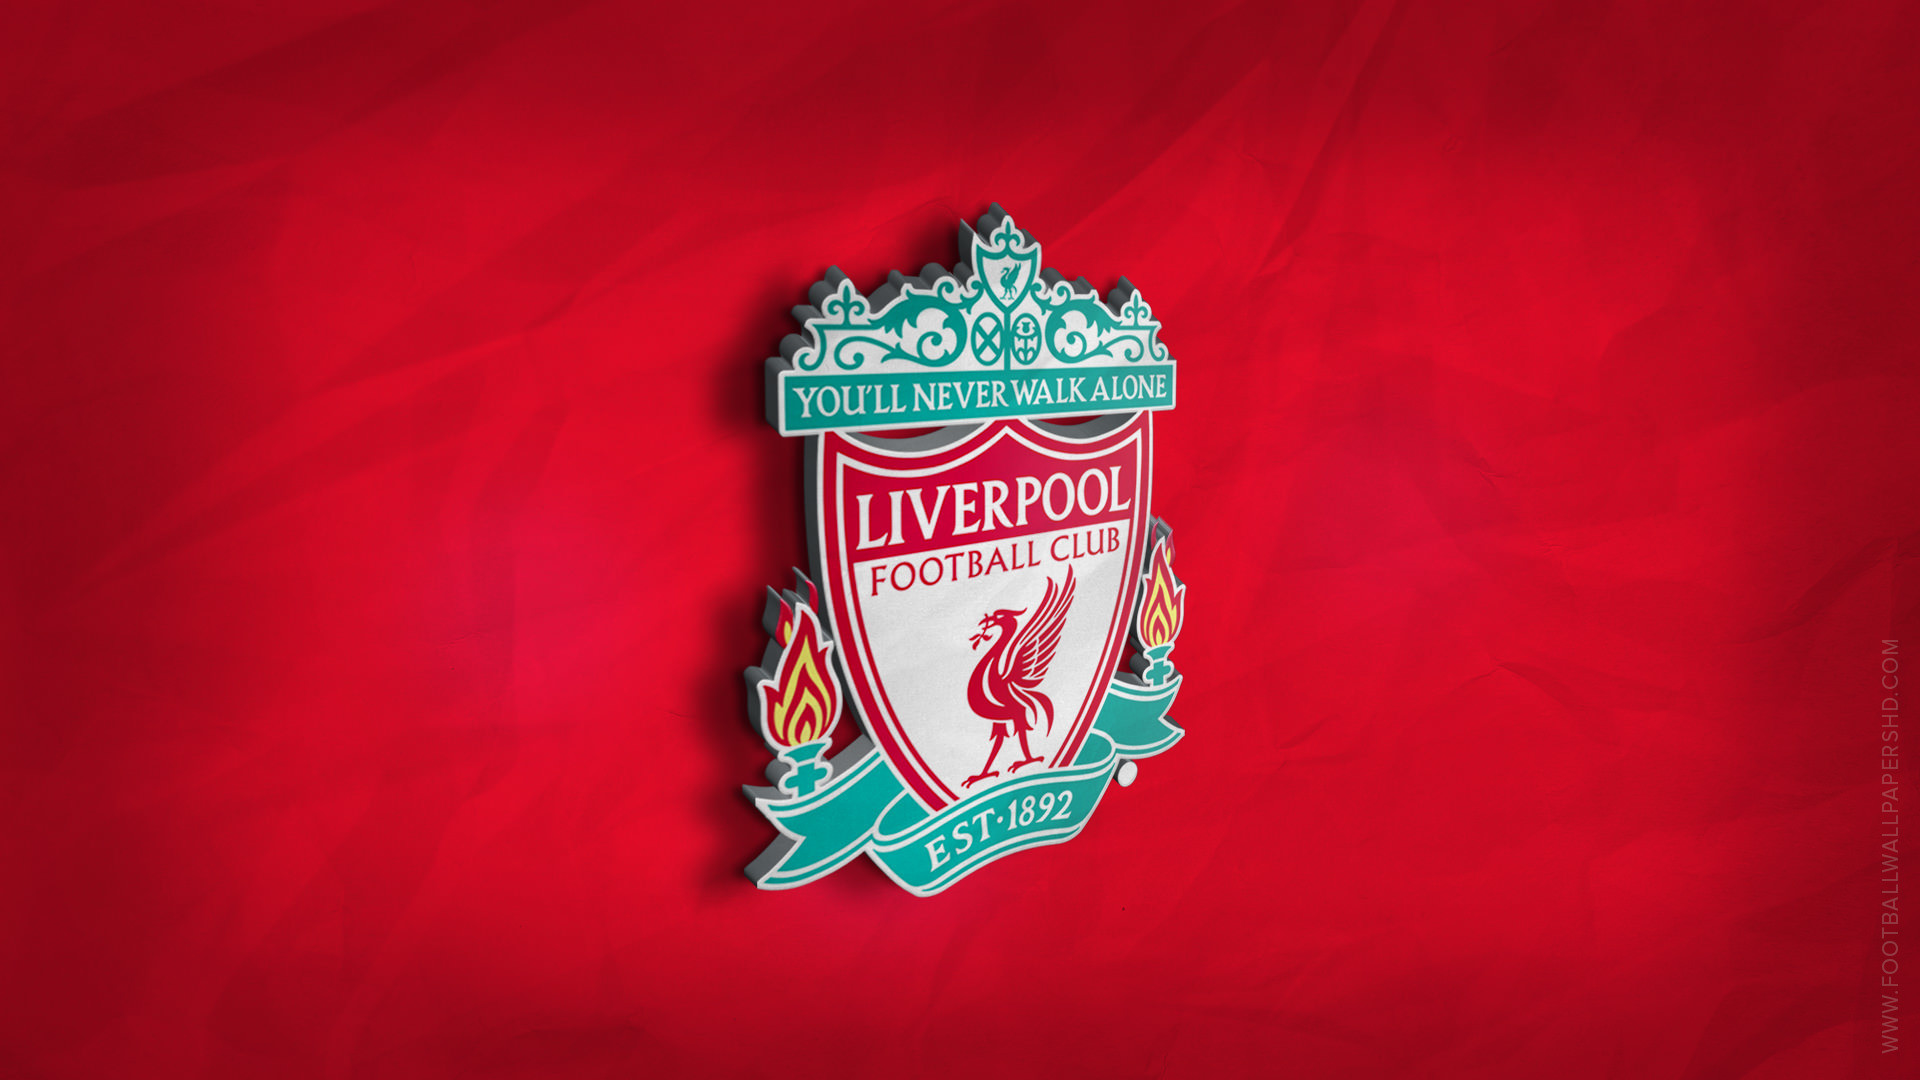 Lfc wallpaper 58 images liverpool fc wallpaper for iphone english football team hd voltagebd Gallery